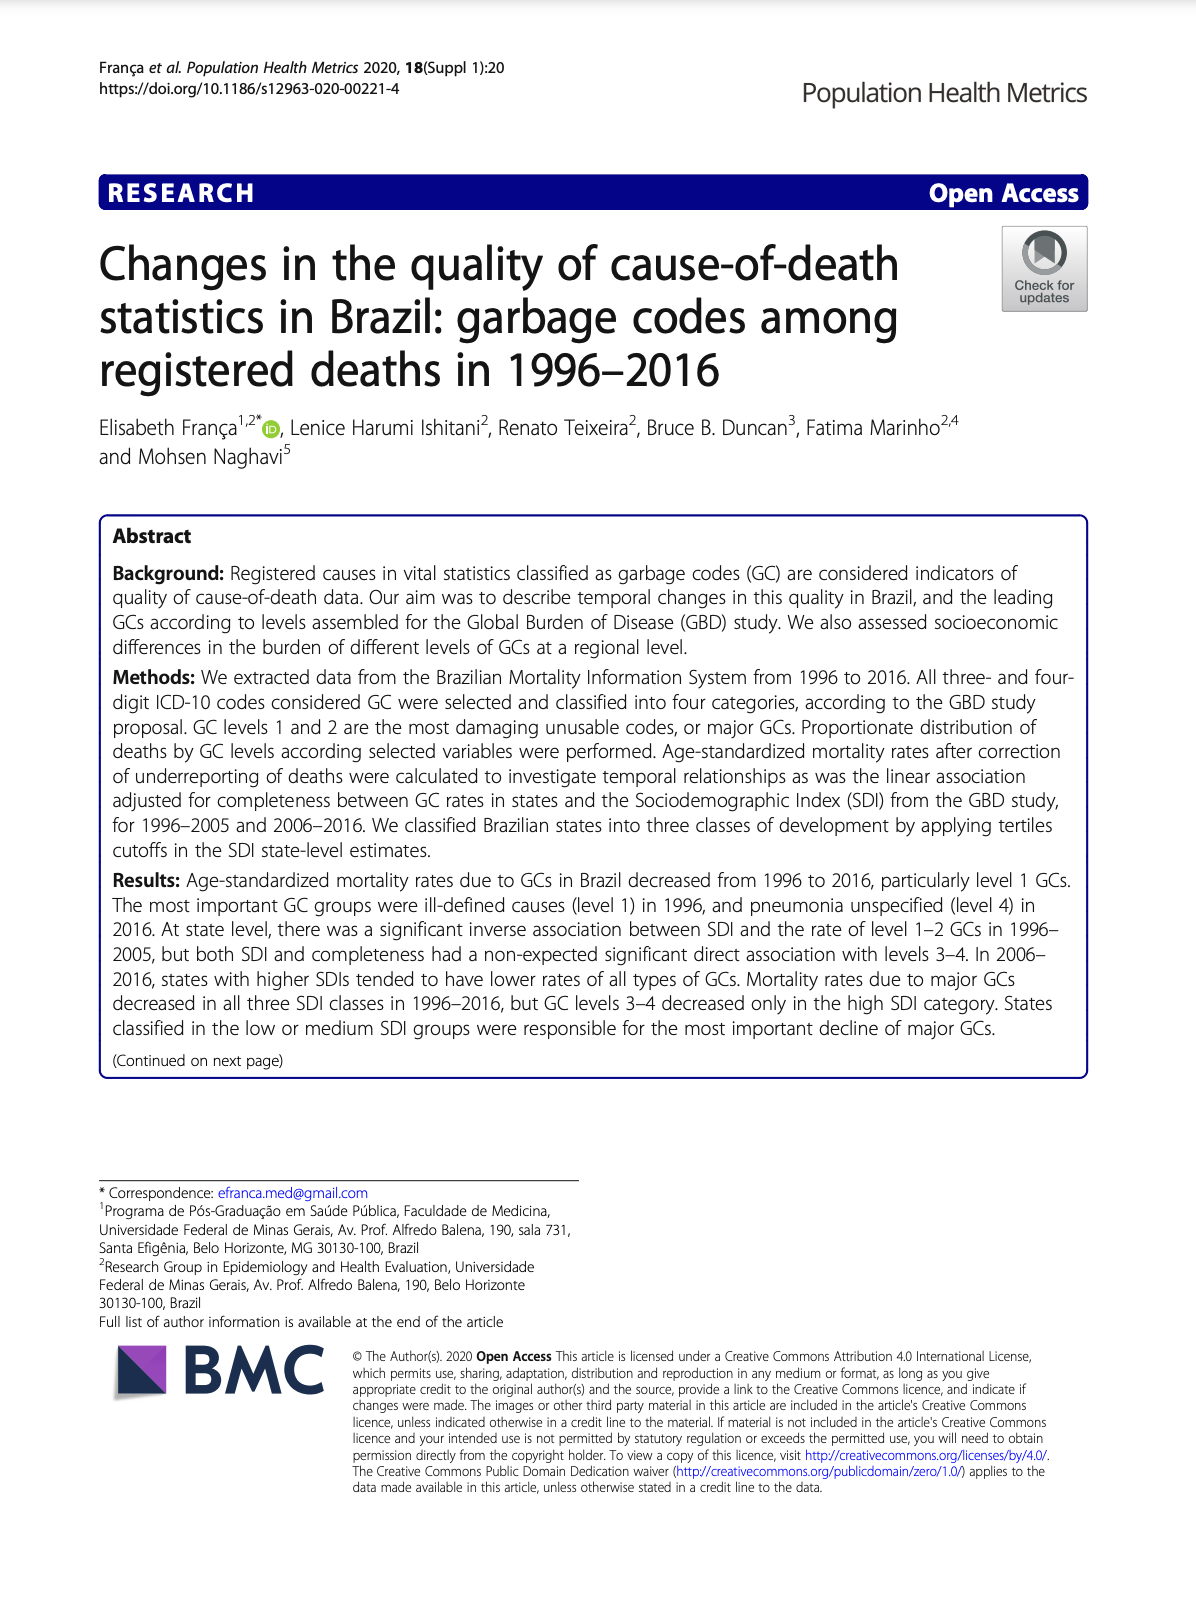 Changes in the quality of cause-of-death